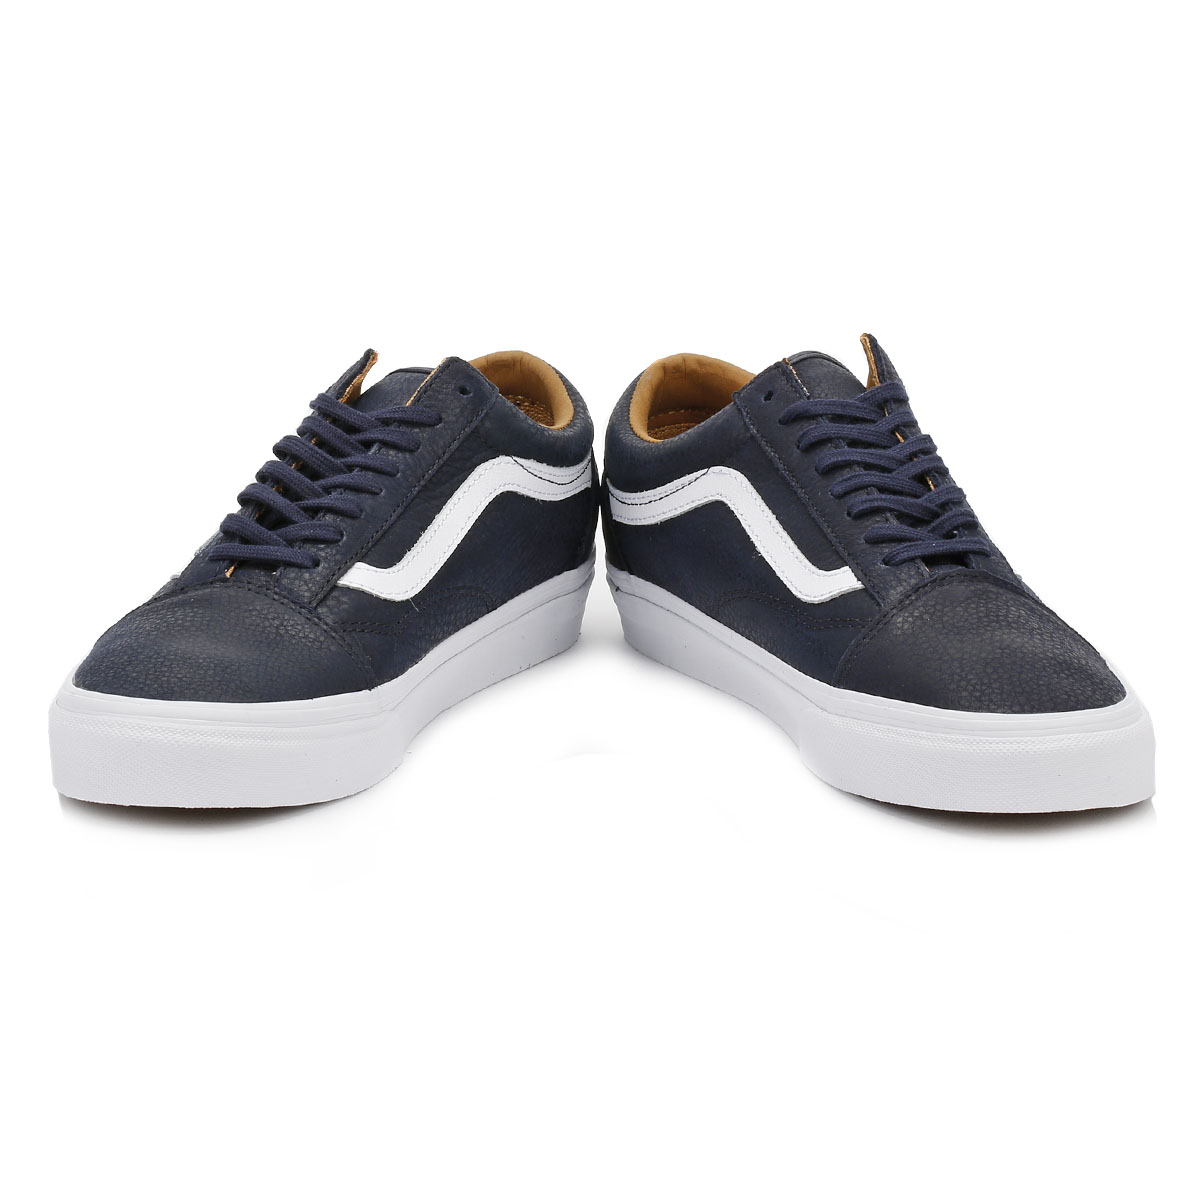 Buy vans trainers paris   OFF52% Discounts bb47f464a